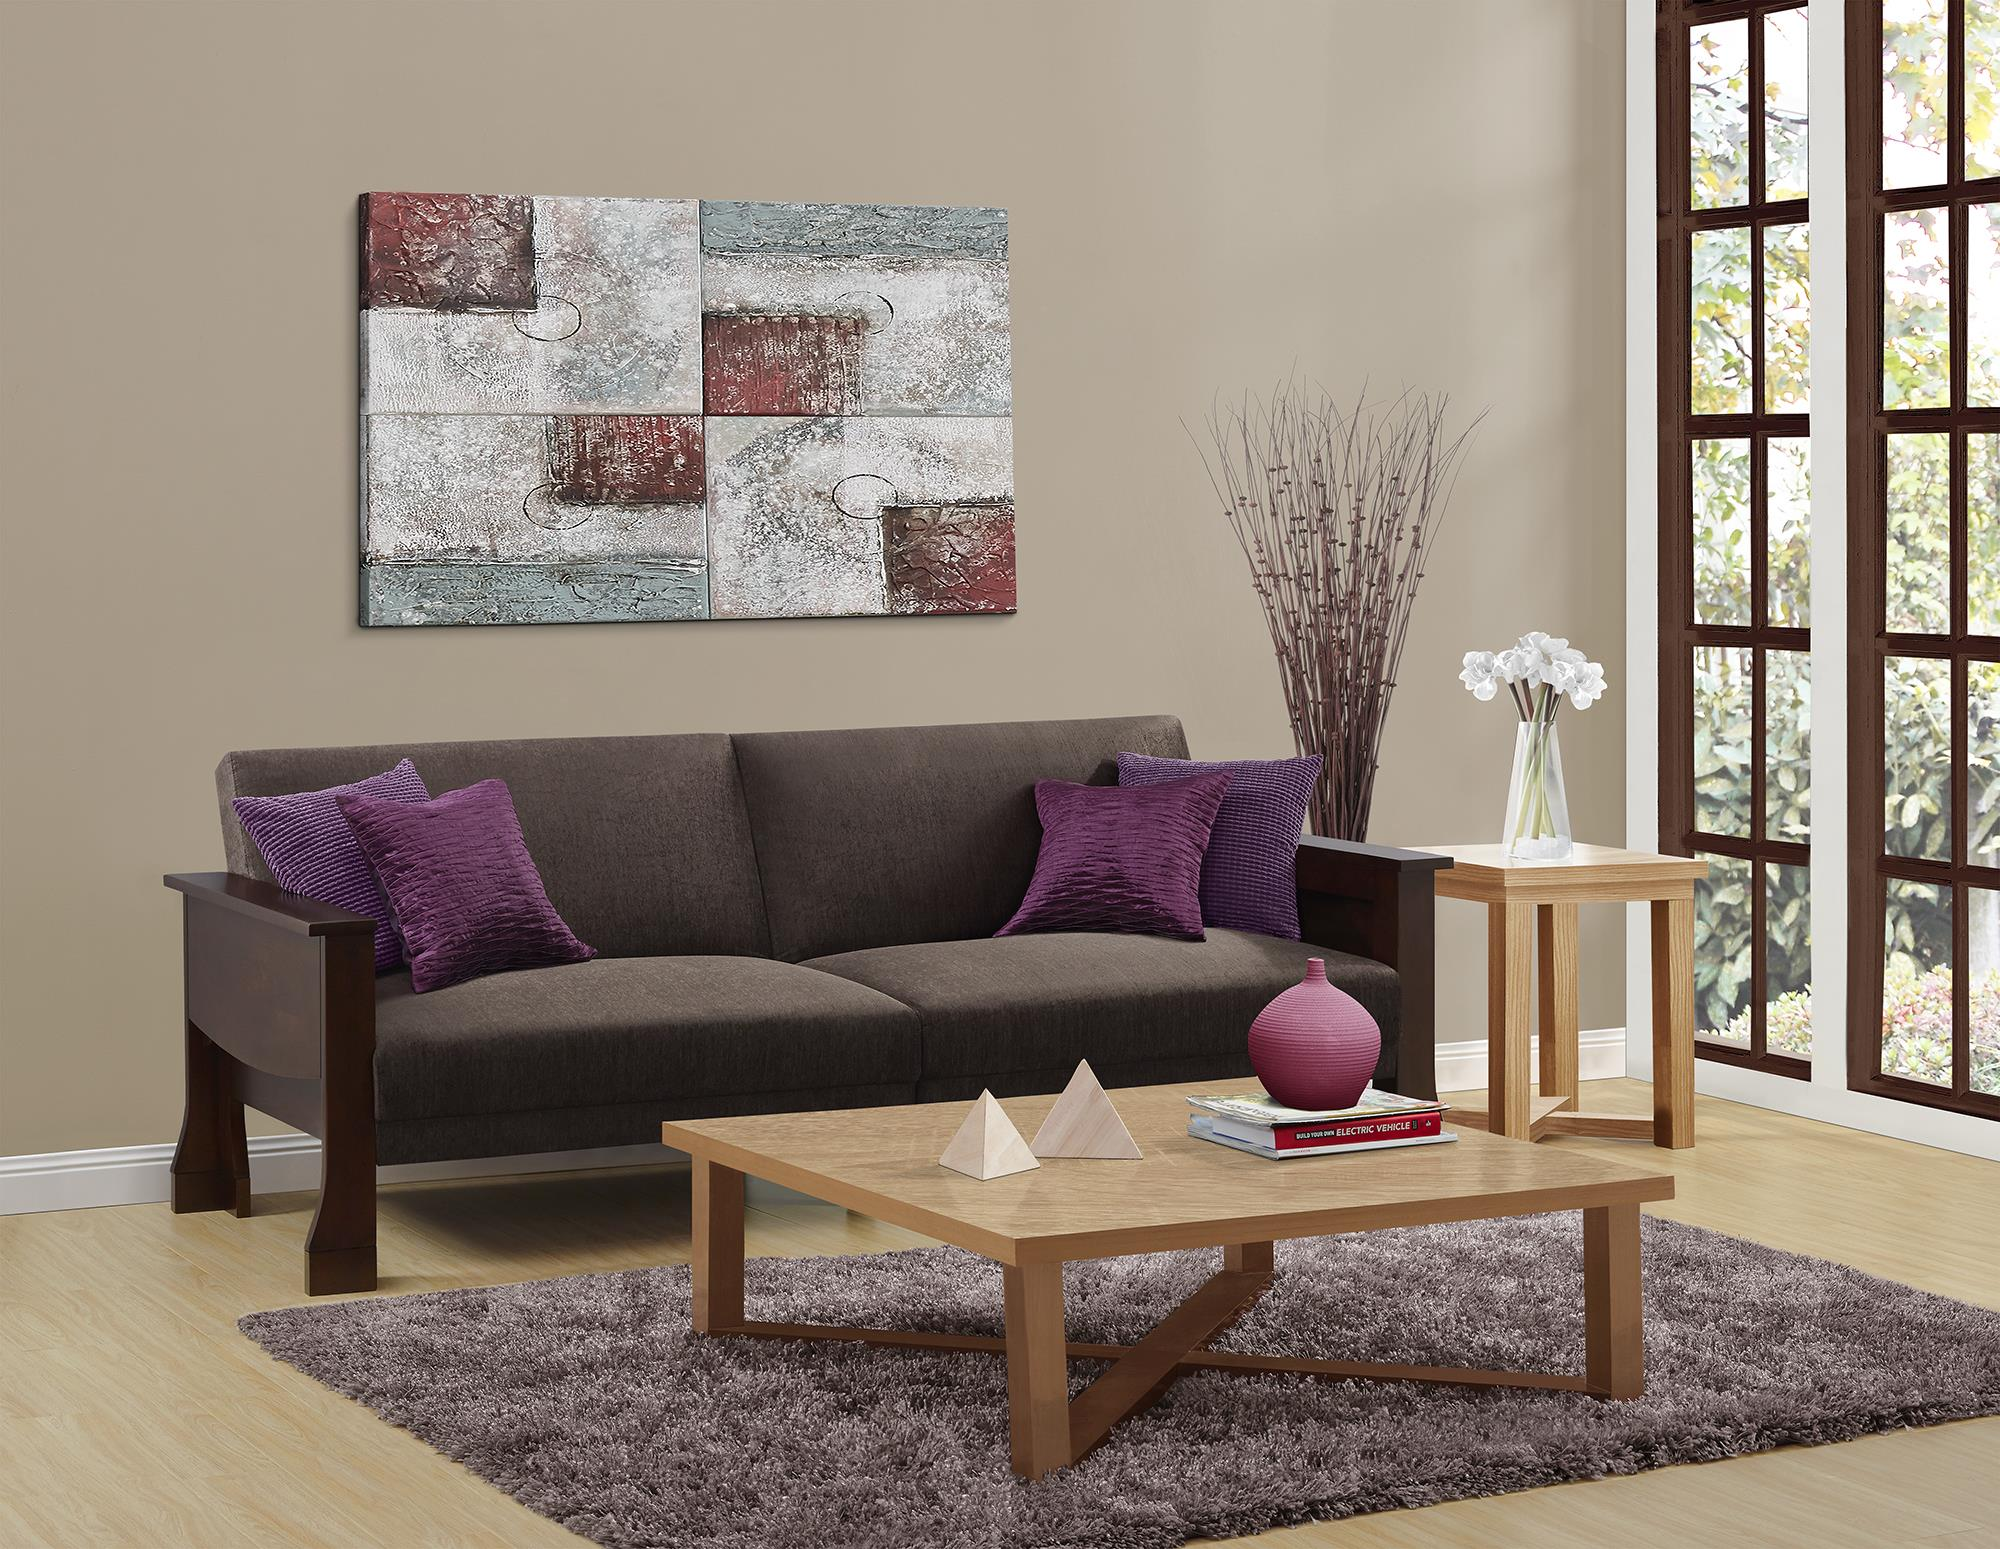 kmart jaclyn smith sleeper sofa decoro leather manufacturers futon  roselawnlutheran